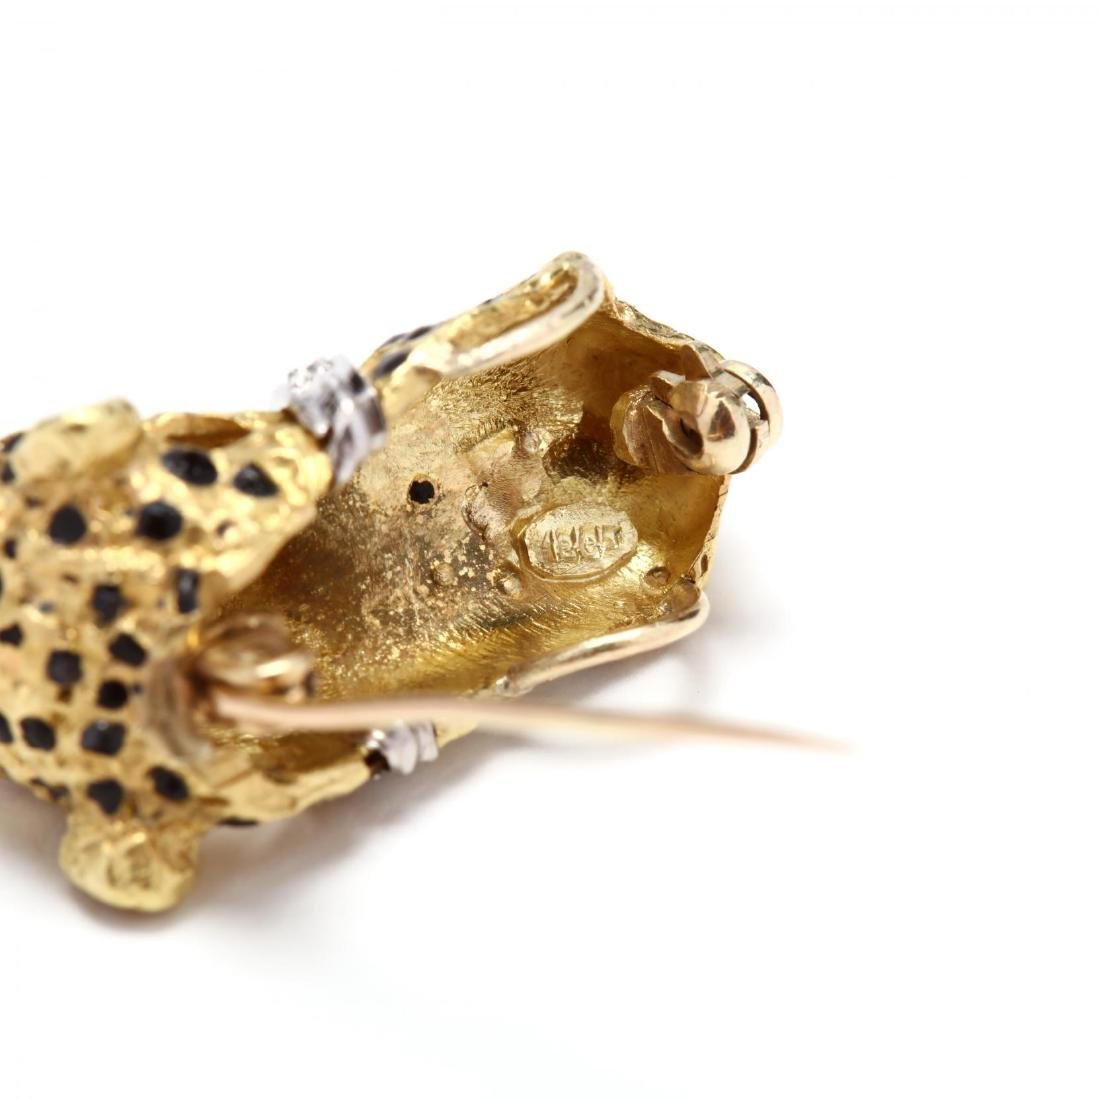 18KT Gold, Enamel, and Gem Set Cheetah Earrings and - 9